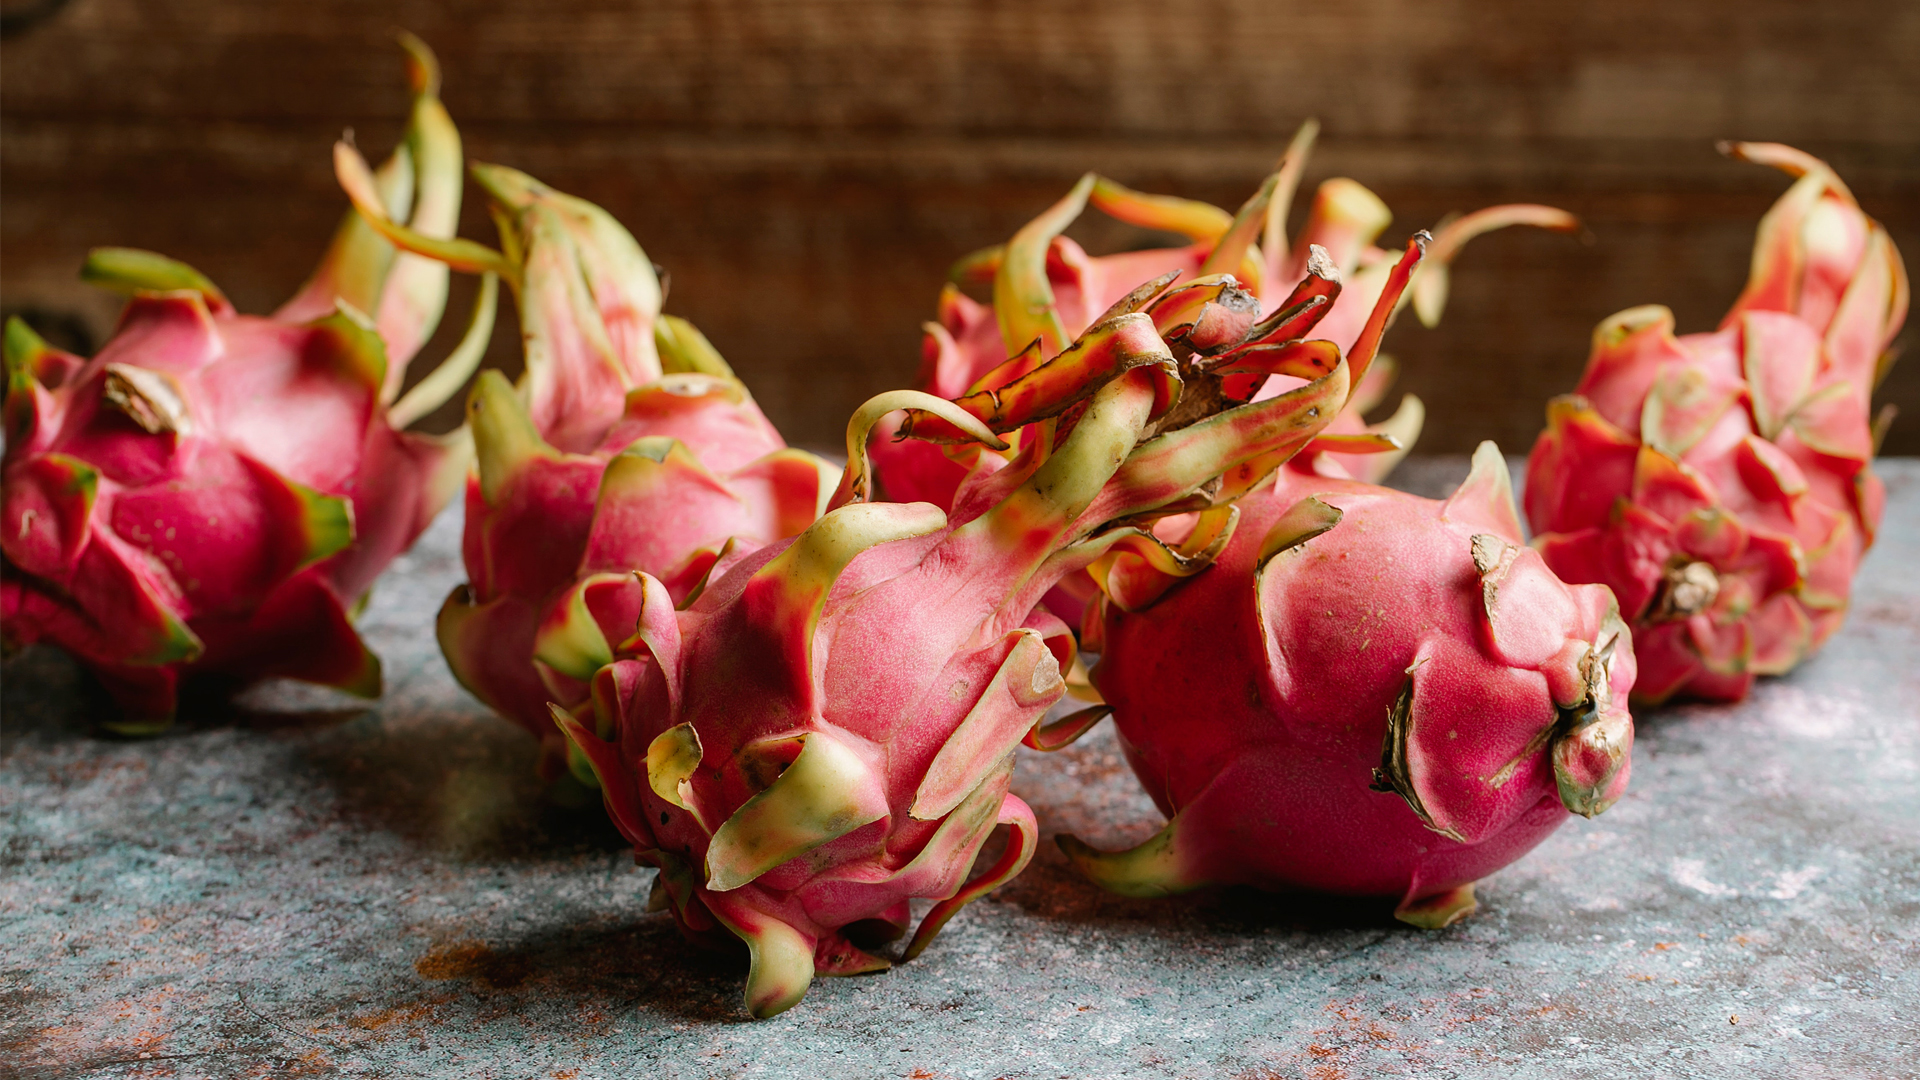 Dragon Fruit Gets Canceled - Zenger News